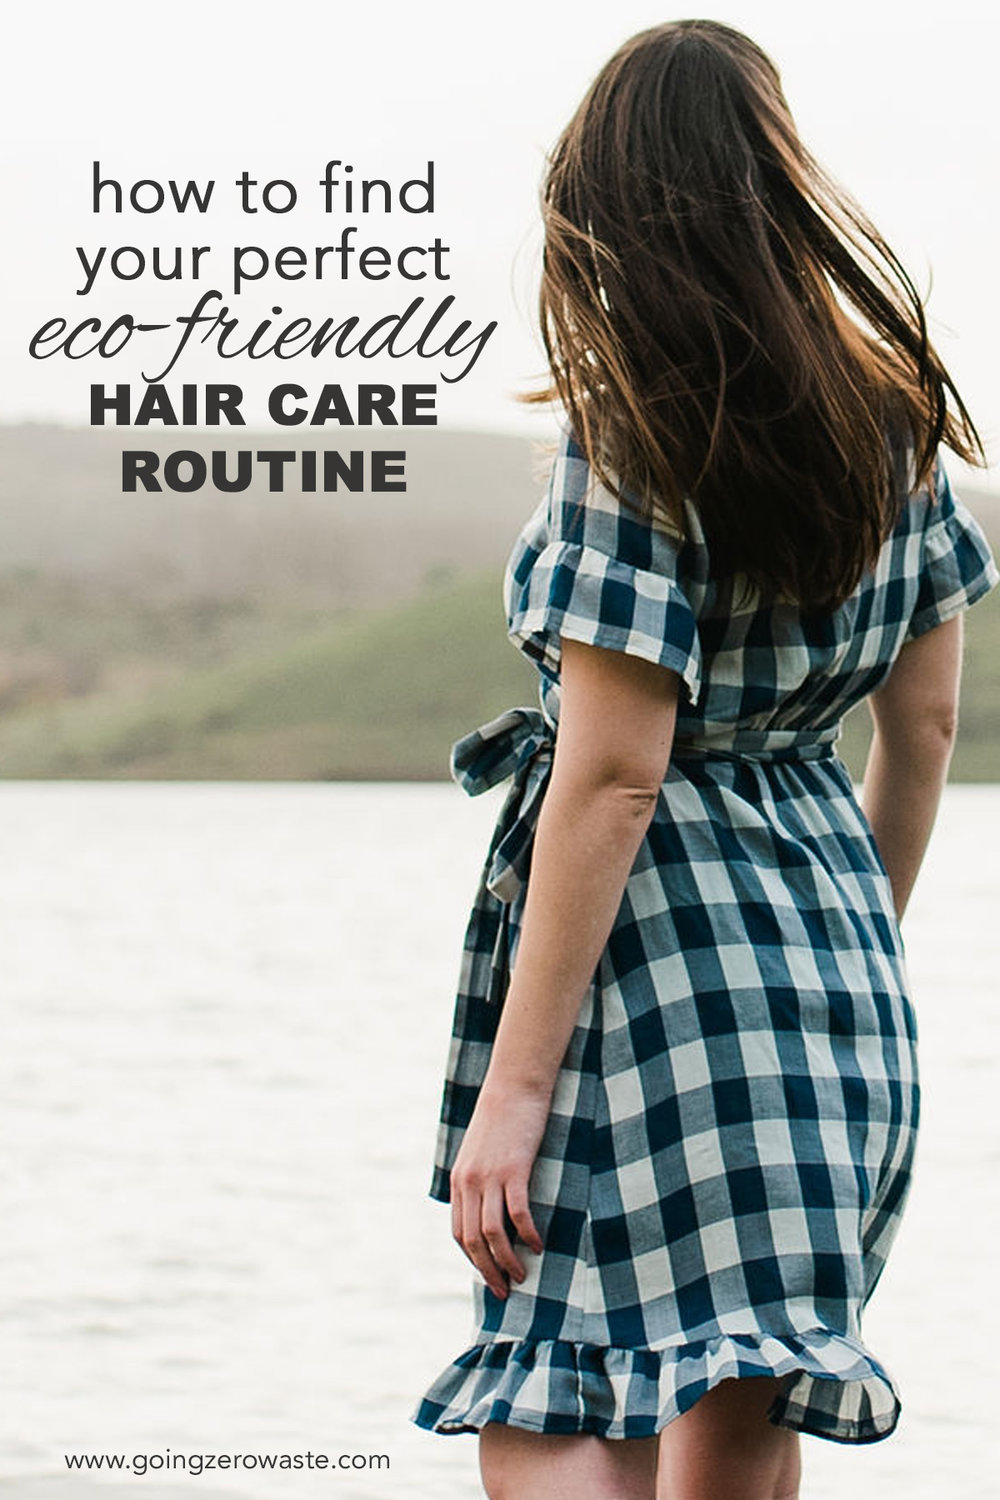 how to find your perfect eco-friendly hair care routine from www.goingzerowaste.com #ecofriendly #haircare #zerowaste